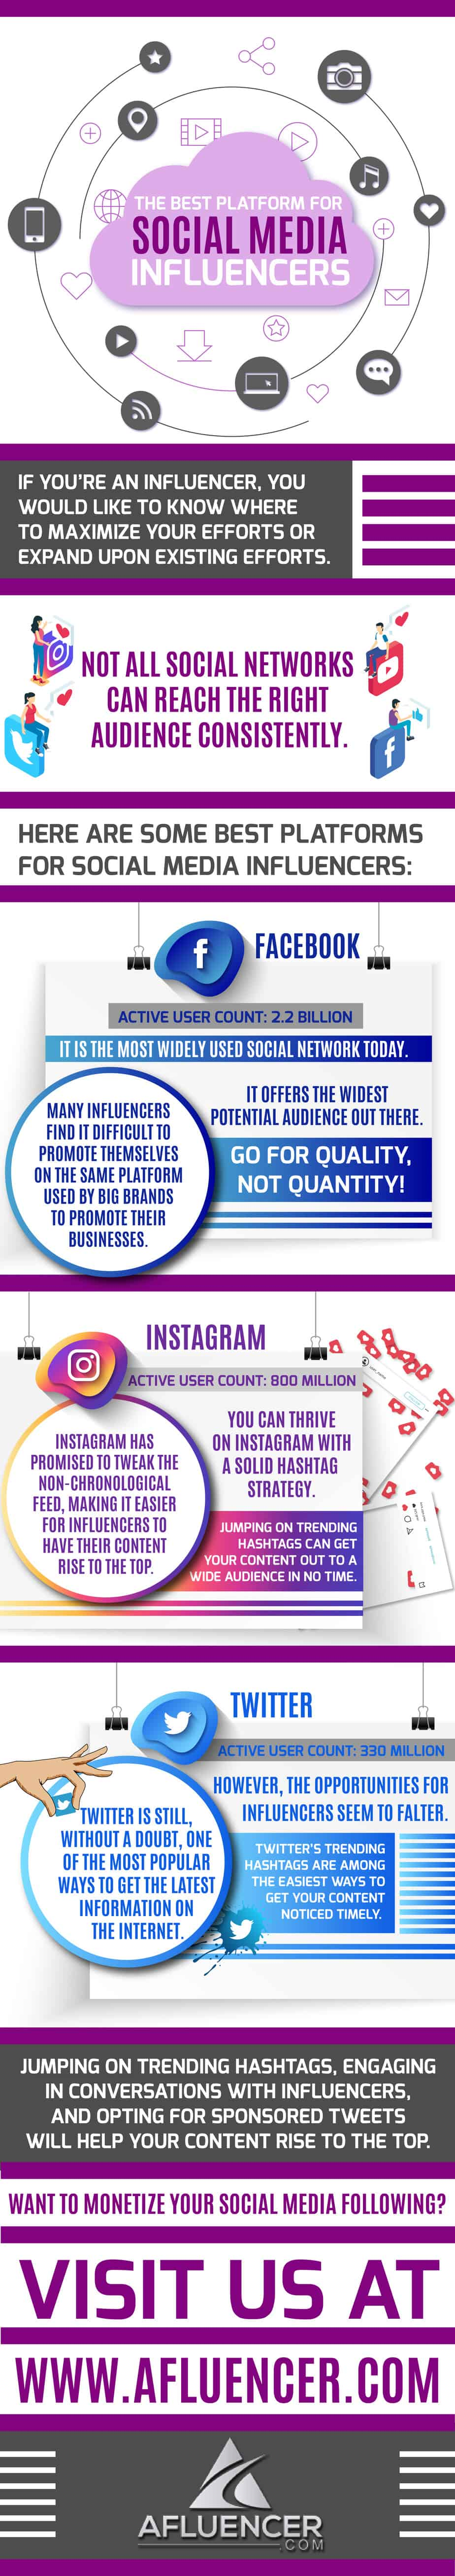 The Best Platform For Social Media Influencers - Infographic